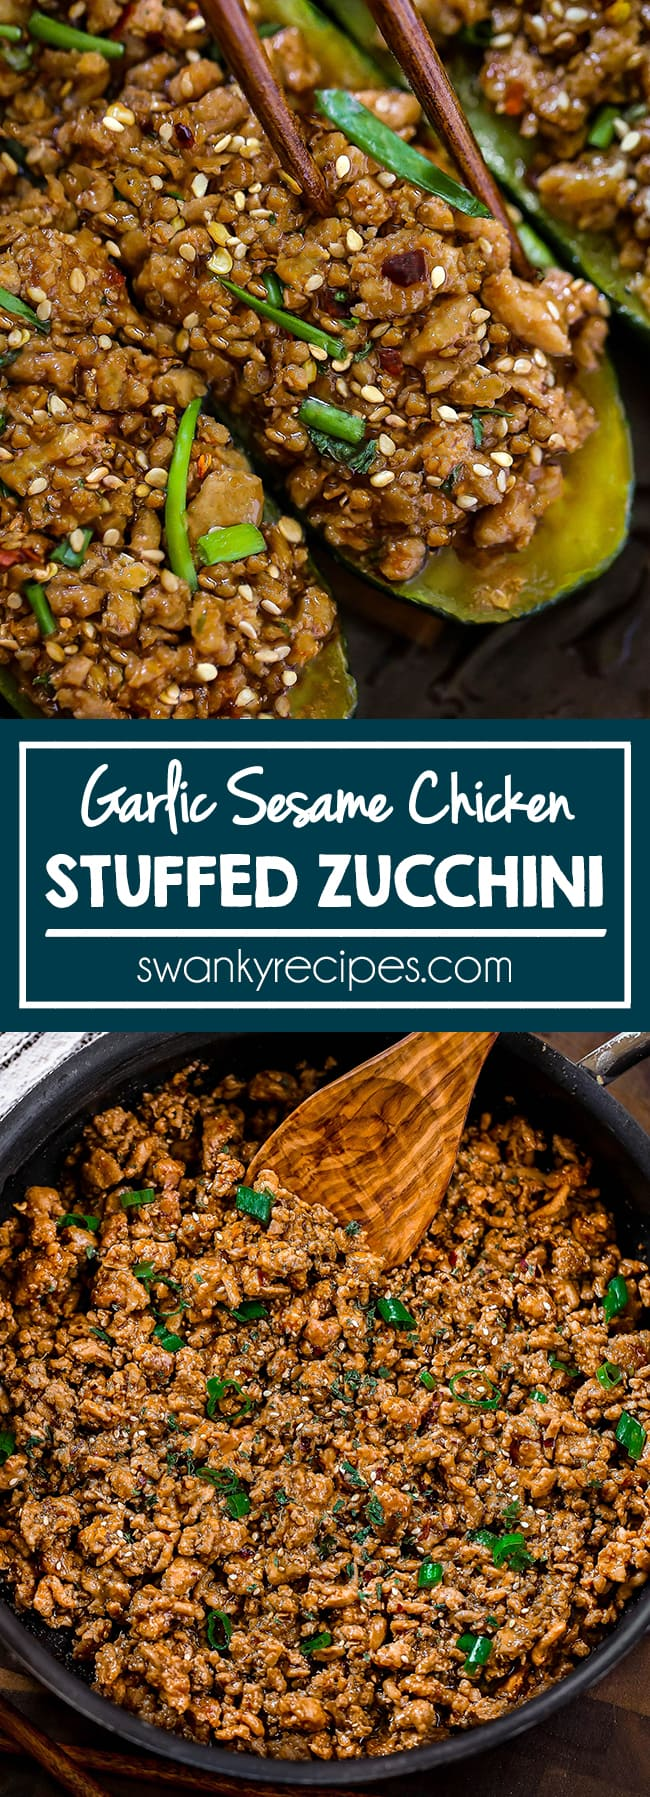 Garlic Sesame Chicken Zucchini Boats - Quick 20 minute Asian chicken recipe with garlic sesame sauce. You'll love this healthy zucchini boat recipe filled with sweet and savory saucy chicken.